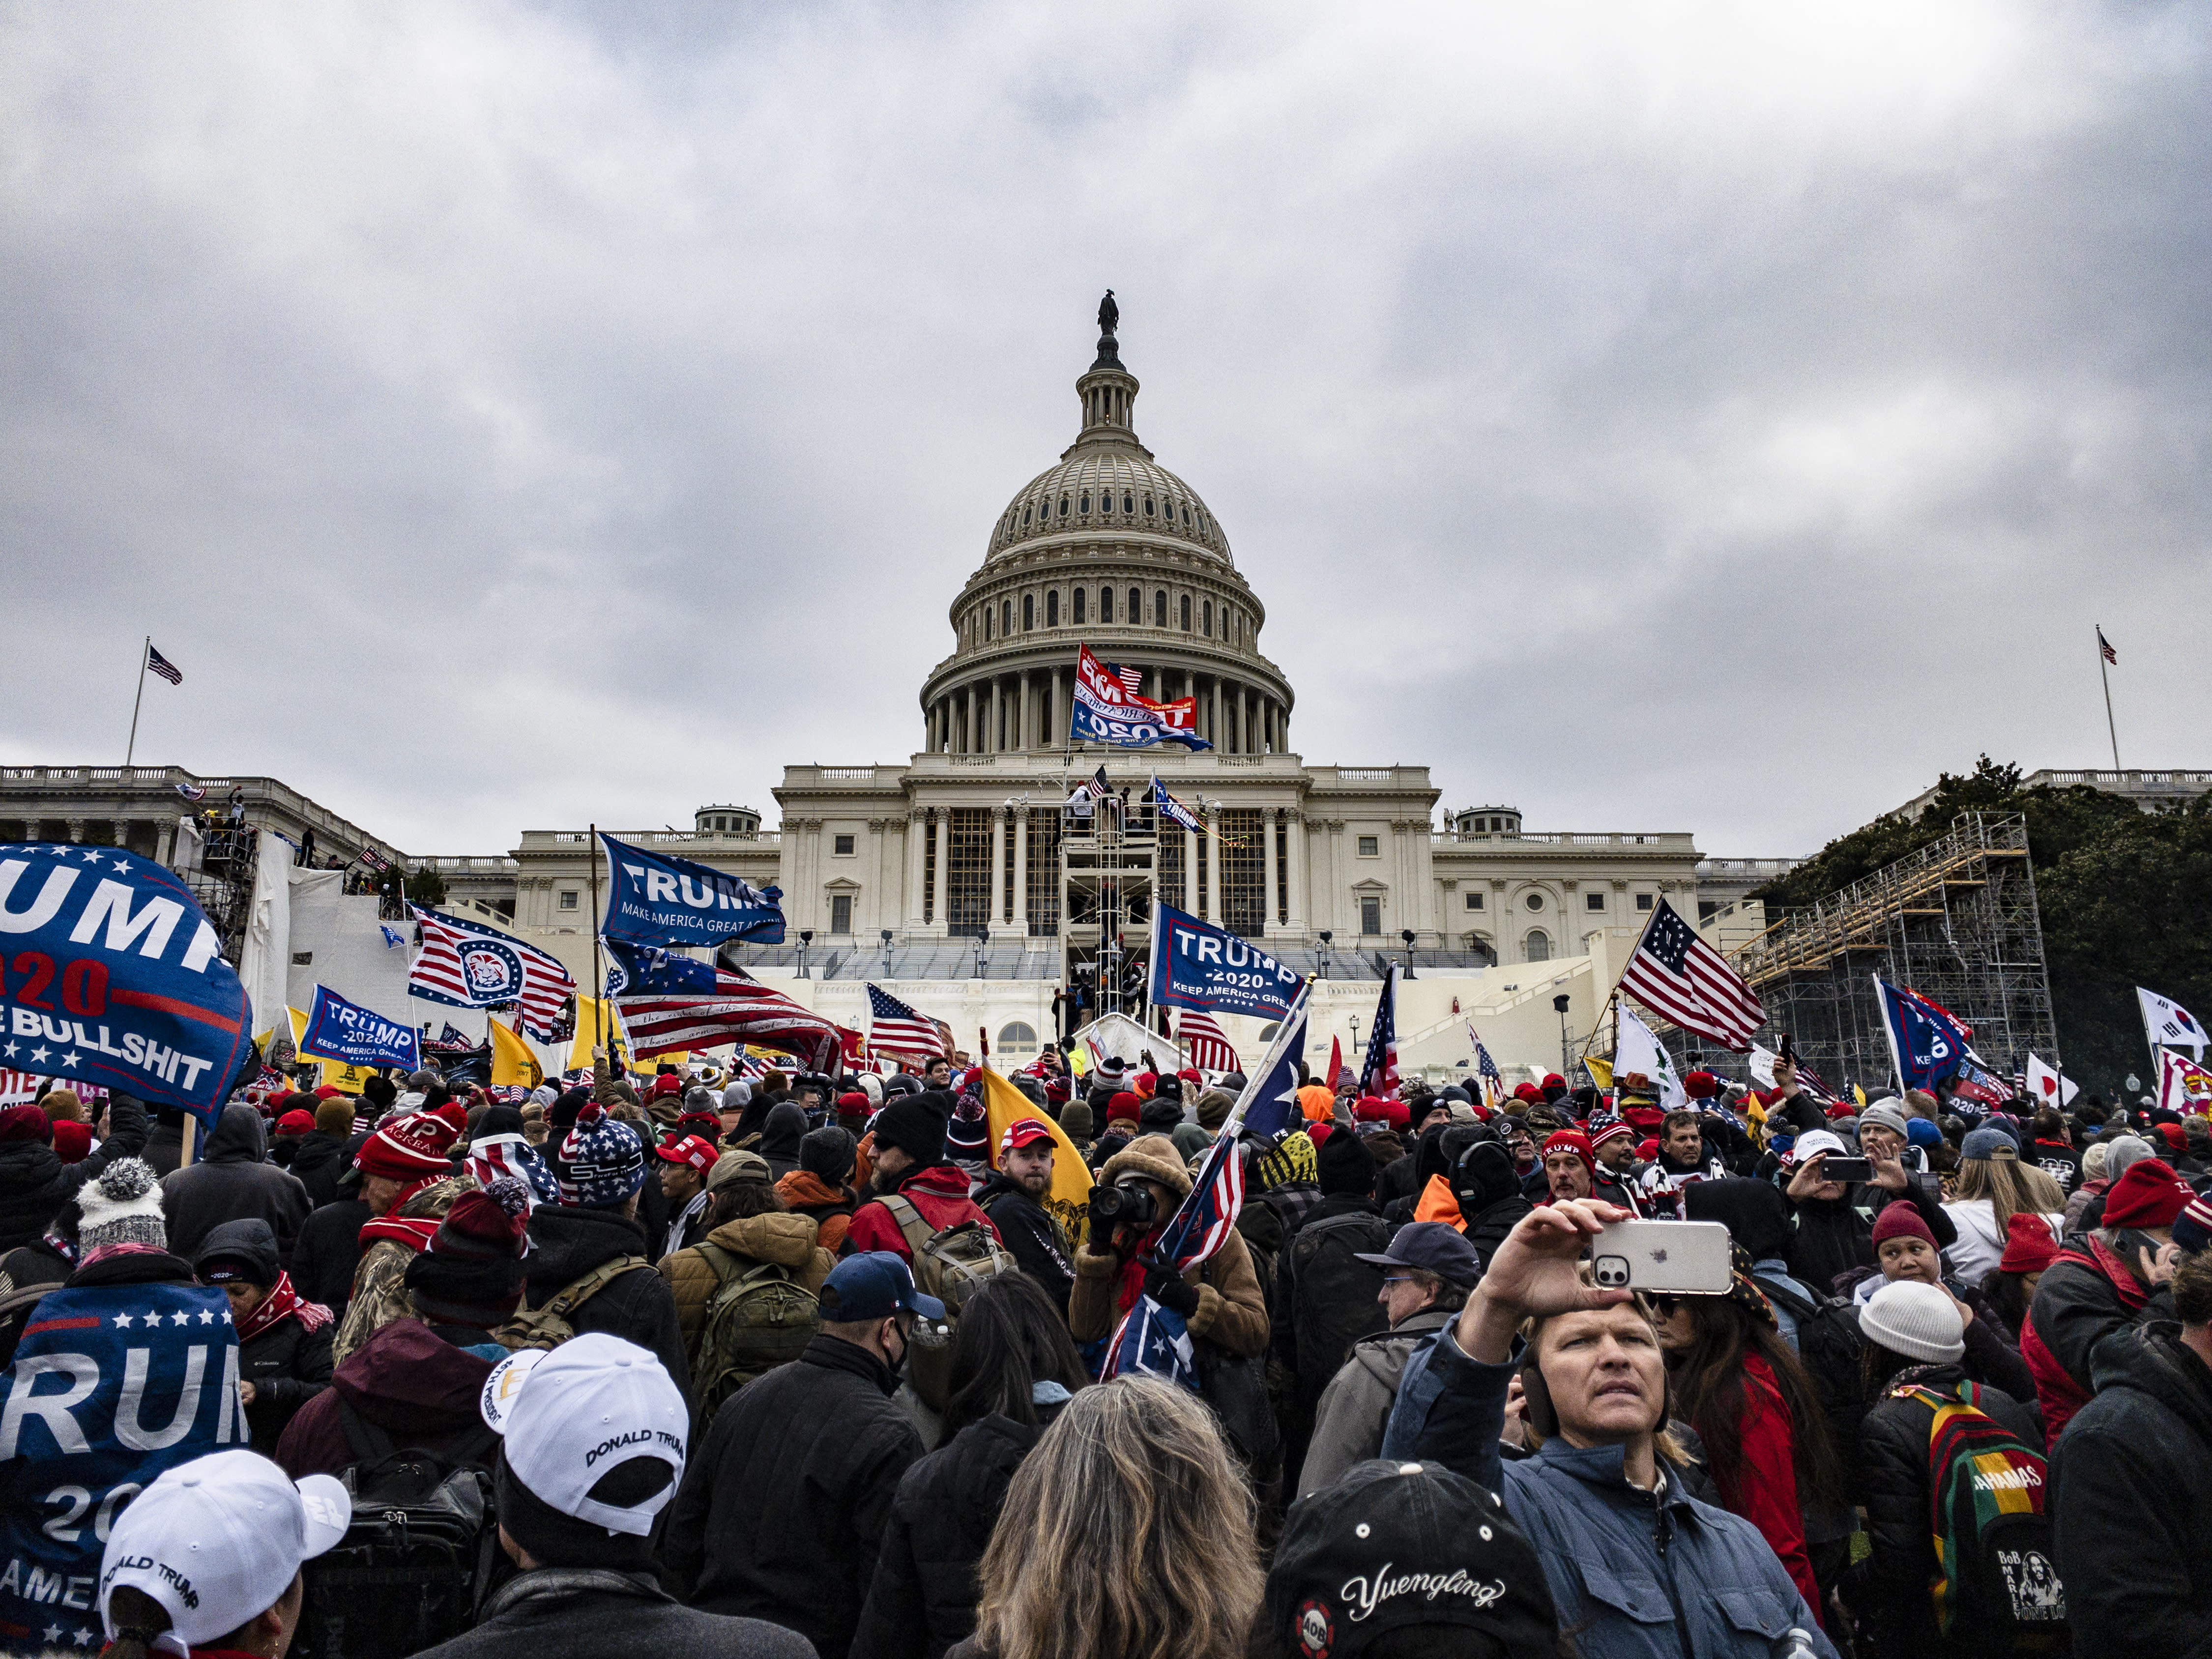 Conspiracy theory blames FBI for Capitol riot